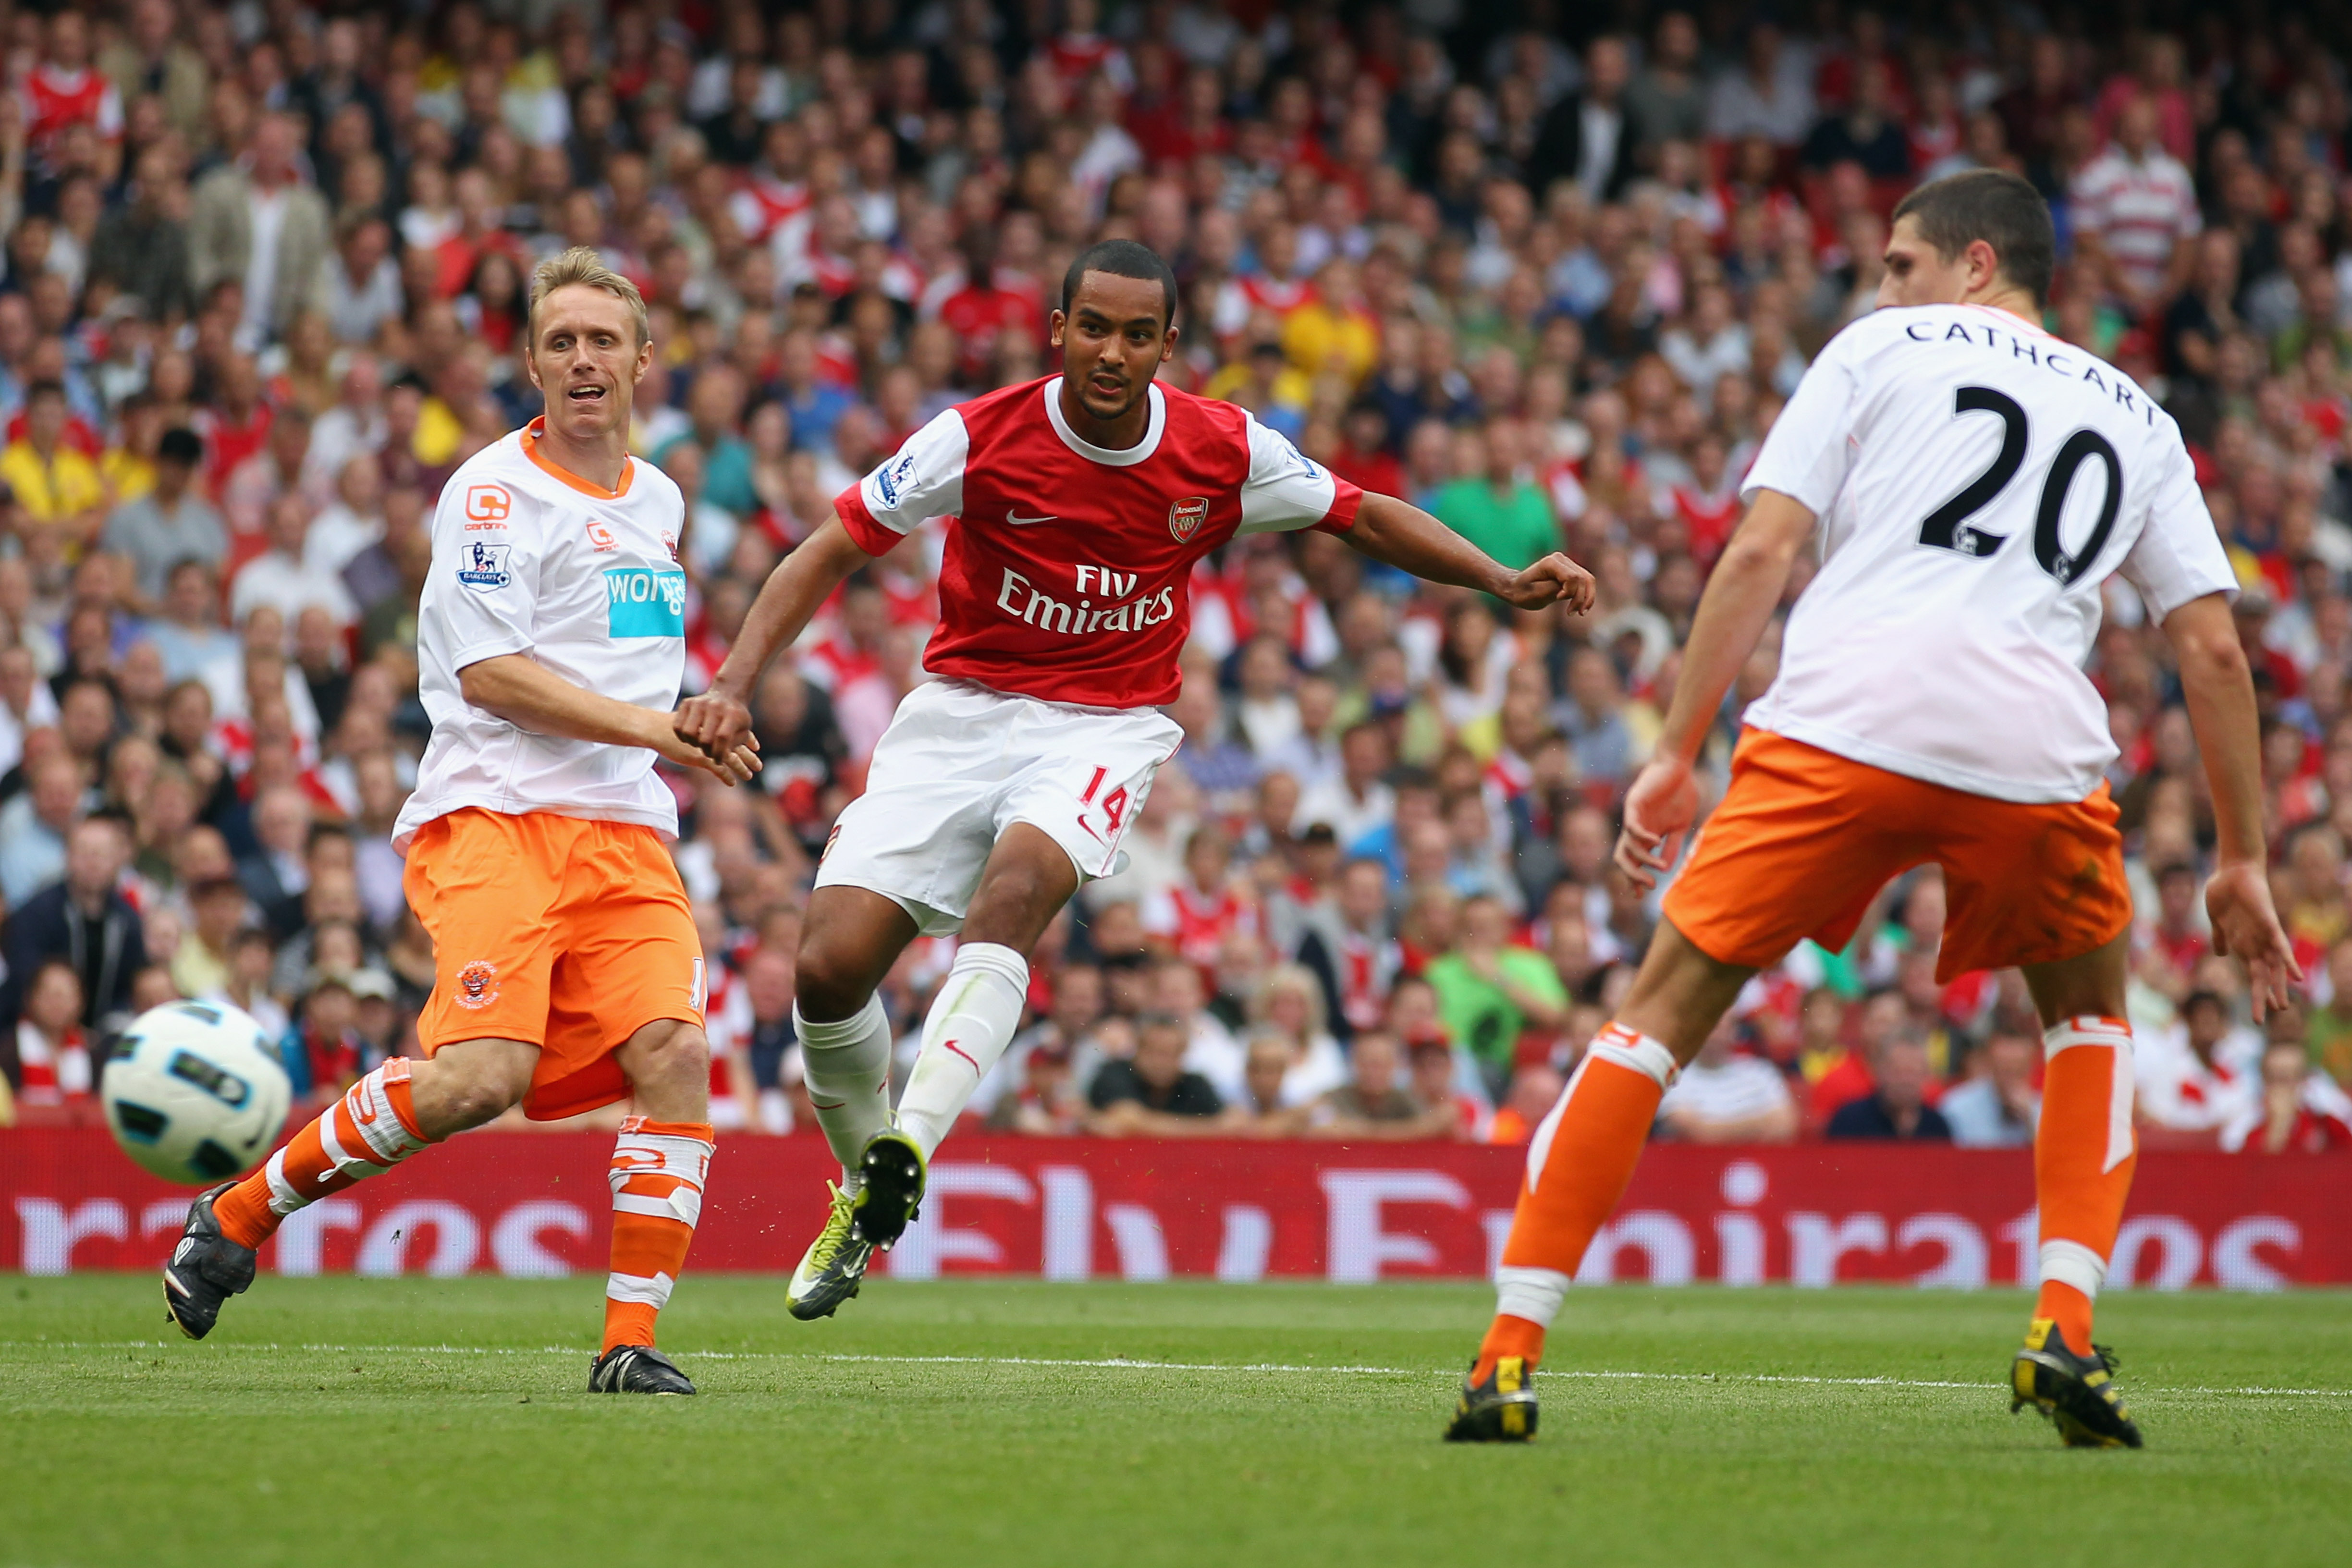 Walcott On His Way to The Hattrick